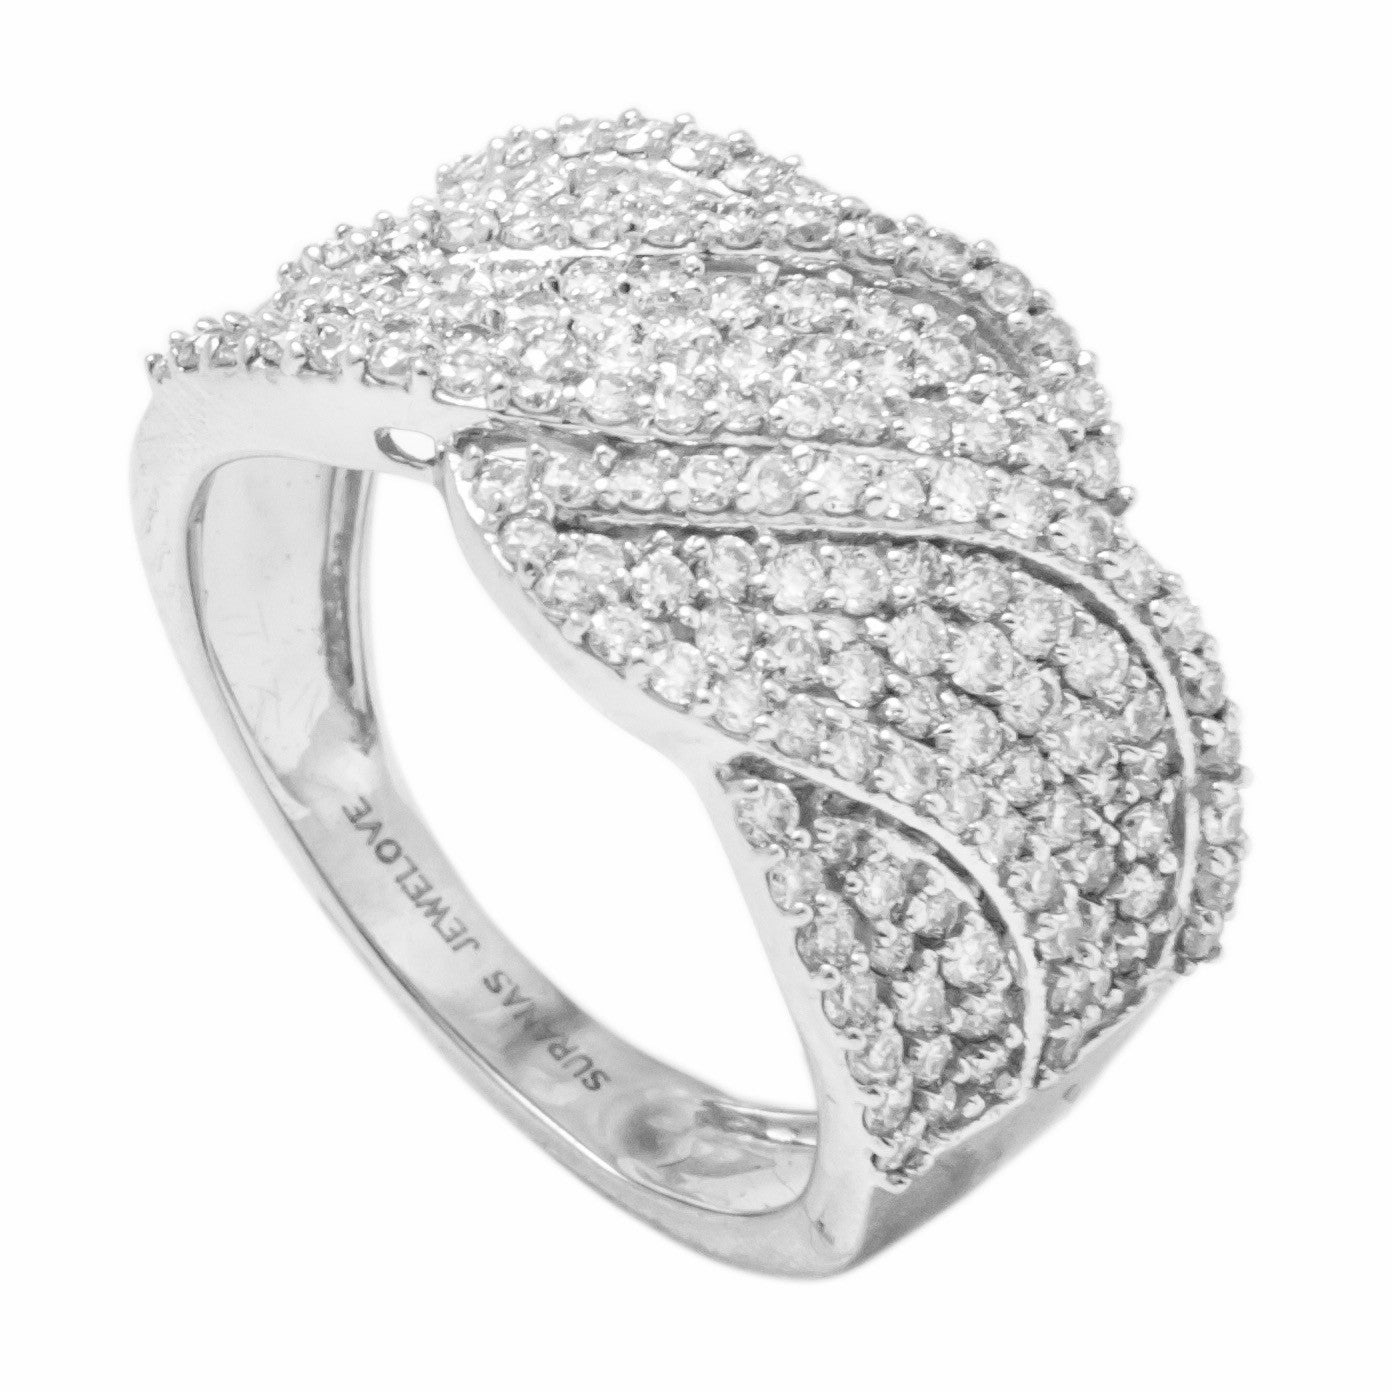 Broad Designer Bridal Ring with Diamonds in Platinum SJ PTO 263 in India